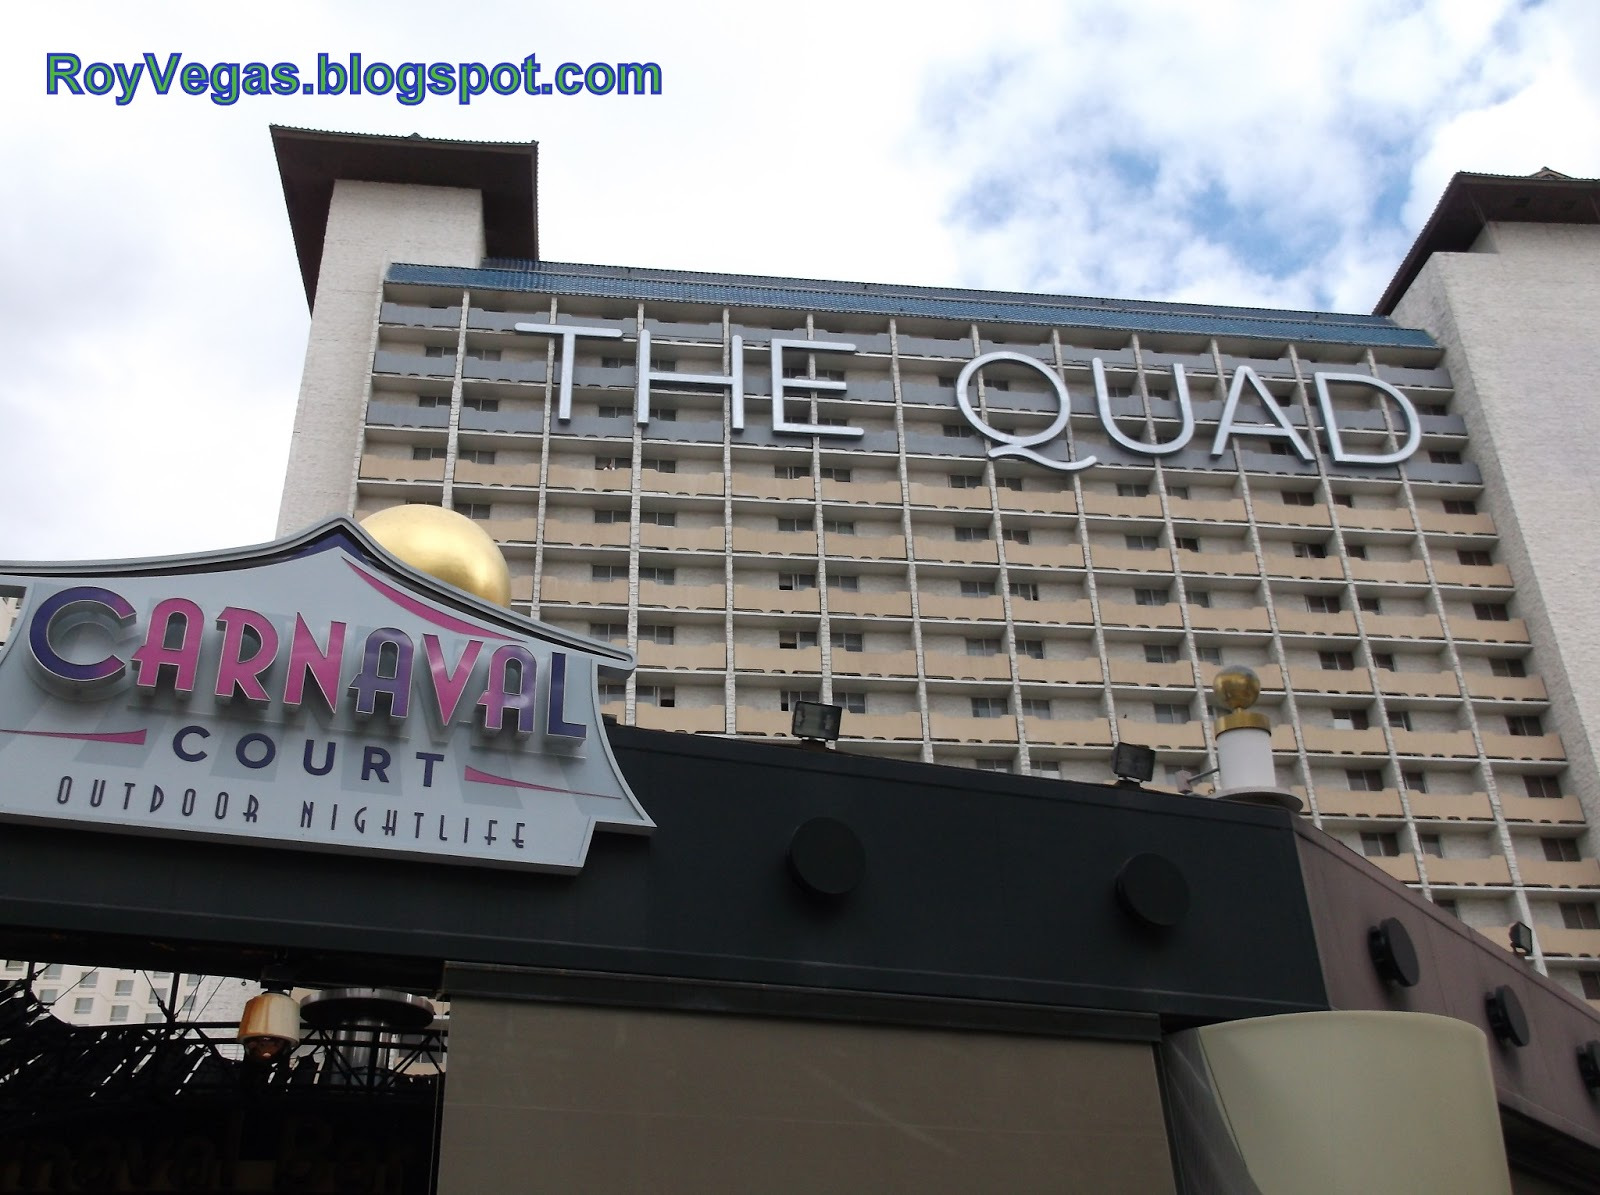 The Quad Vegas